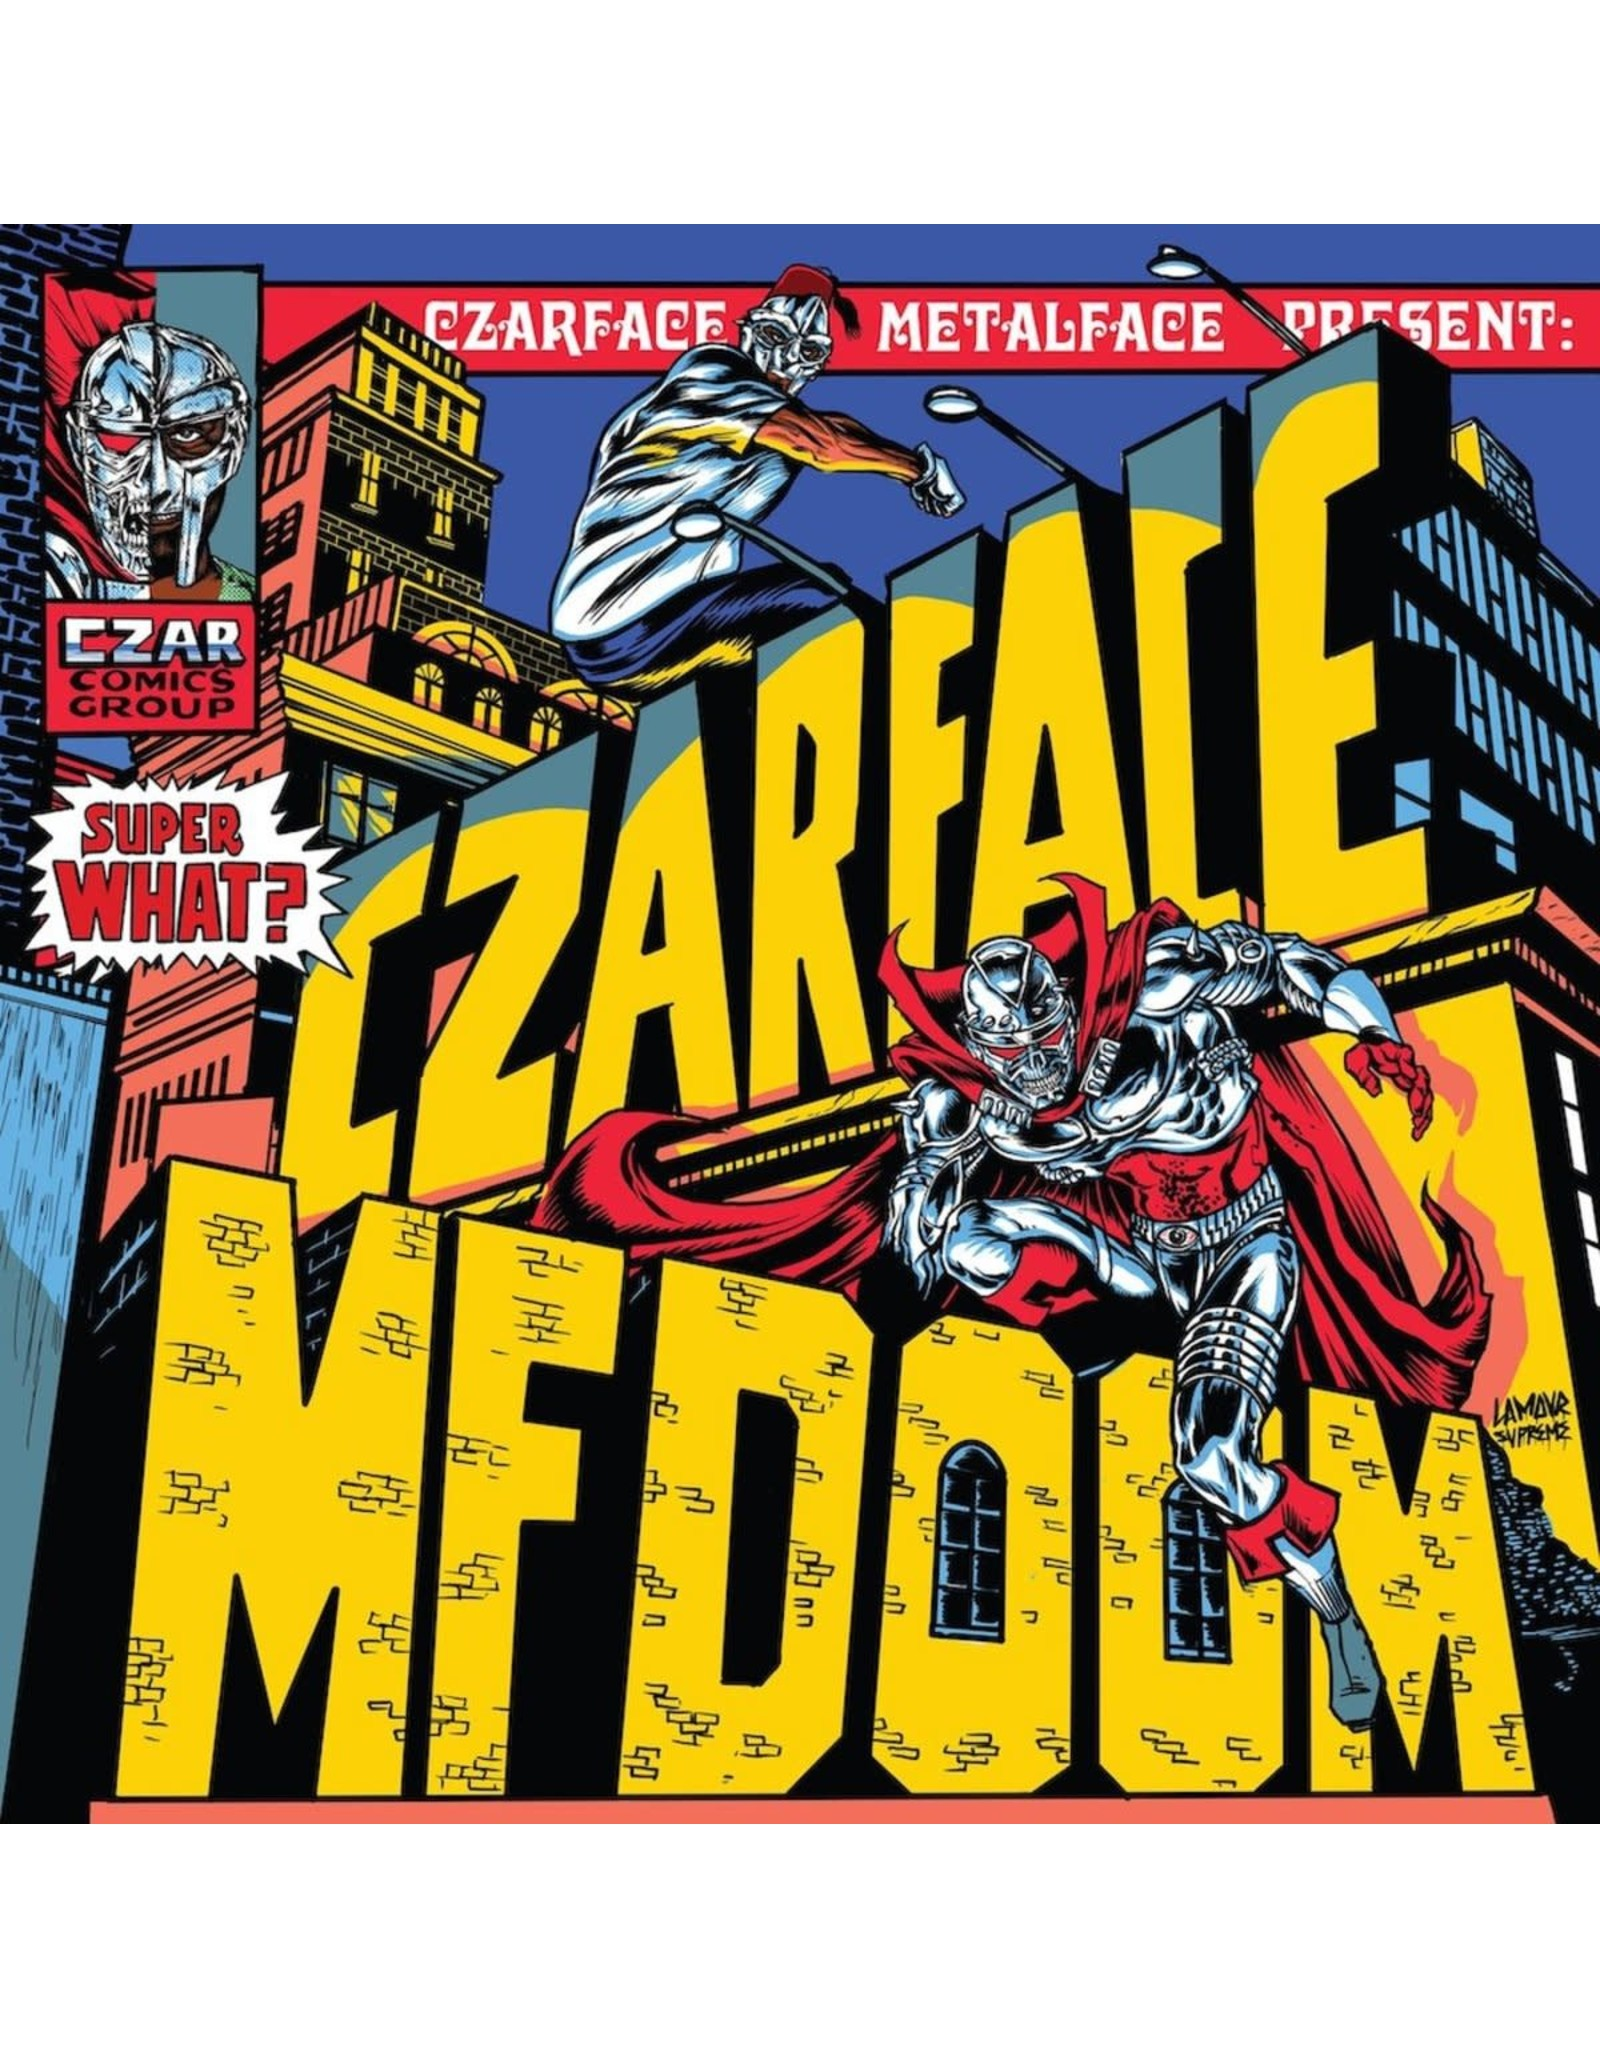 Czarface and MF DOOM - Super What? LP